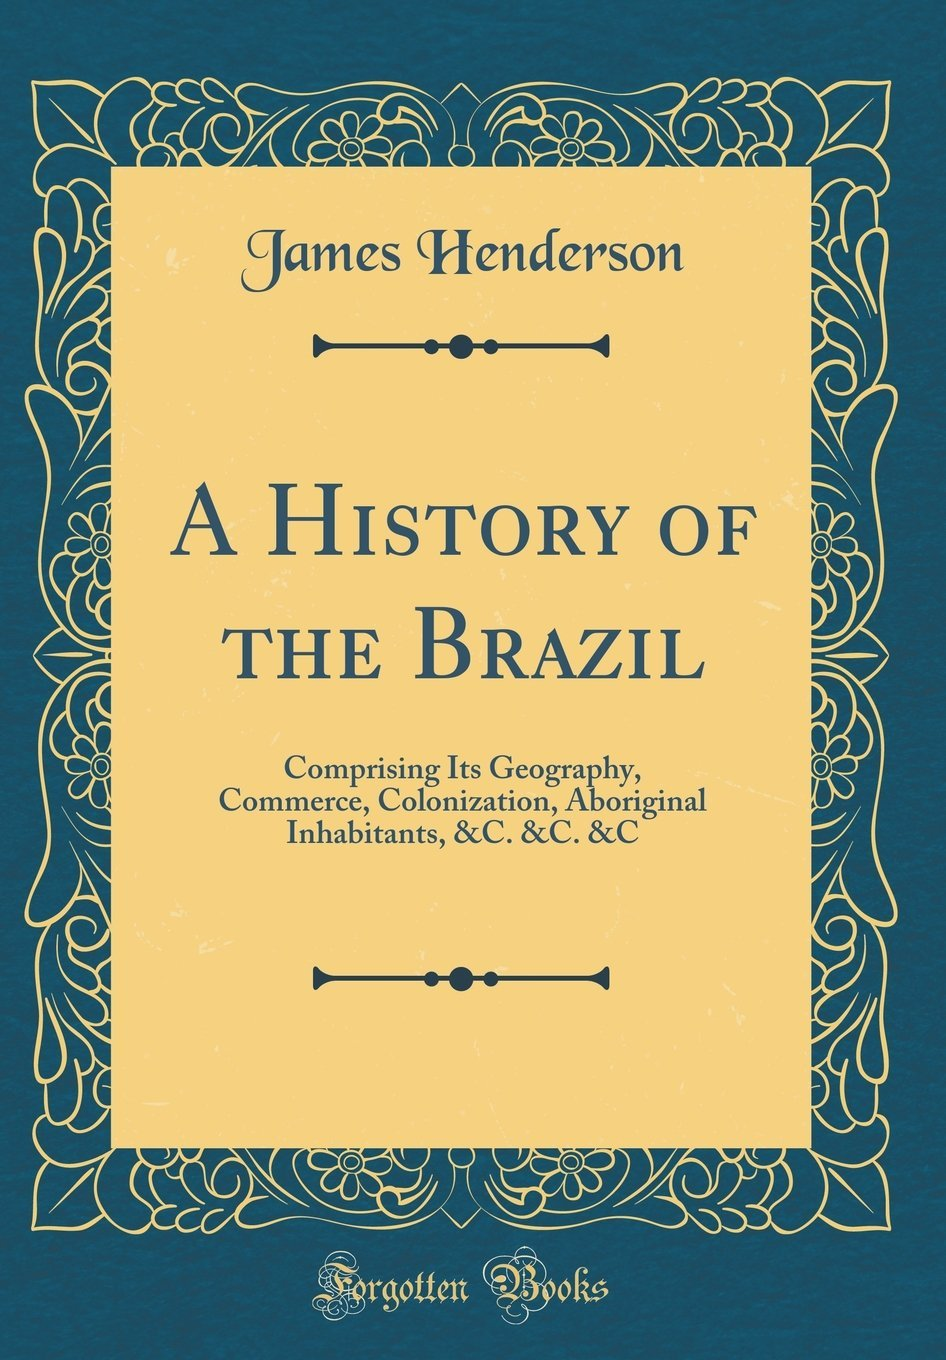 Download A History of the Brazil: Comprising Its Geography, Commerce, Colonization, Aboriginal Inhabitants, &c. &c. &c (Classic Reprint) PDF